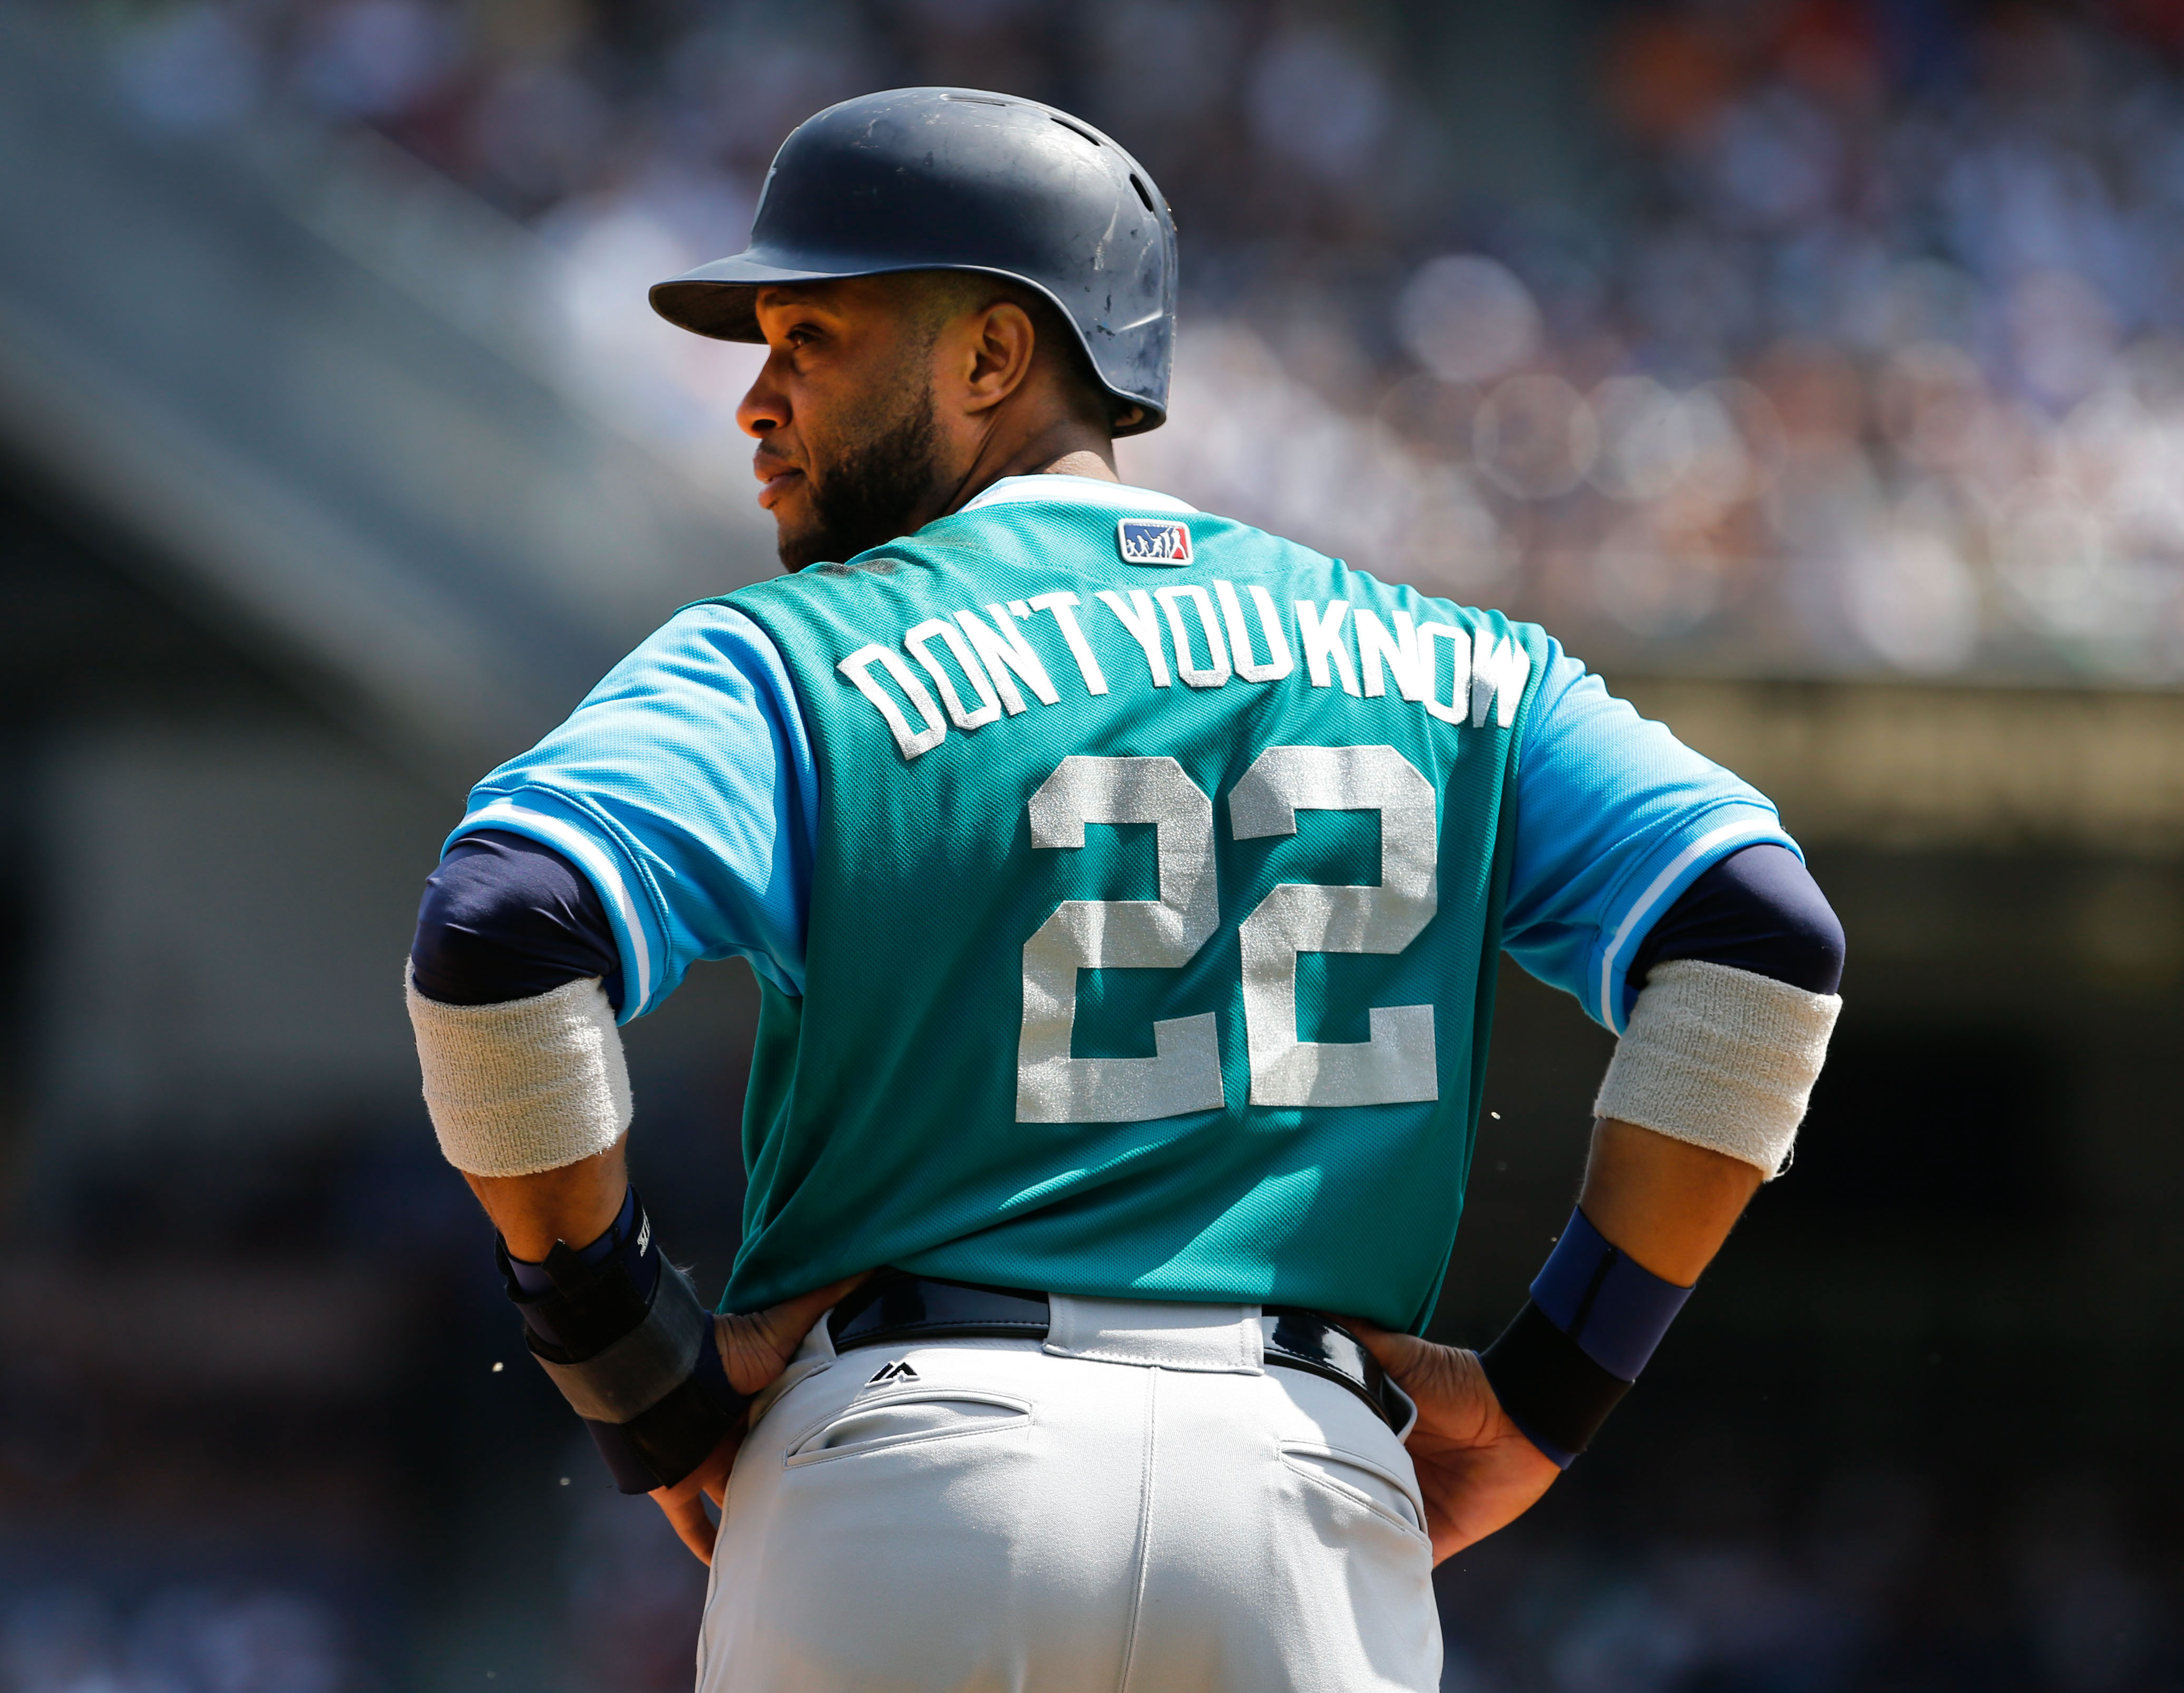 Let's stop the Robinson Cano revisionist history already